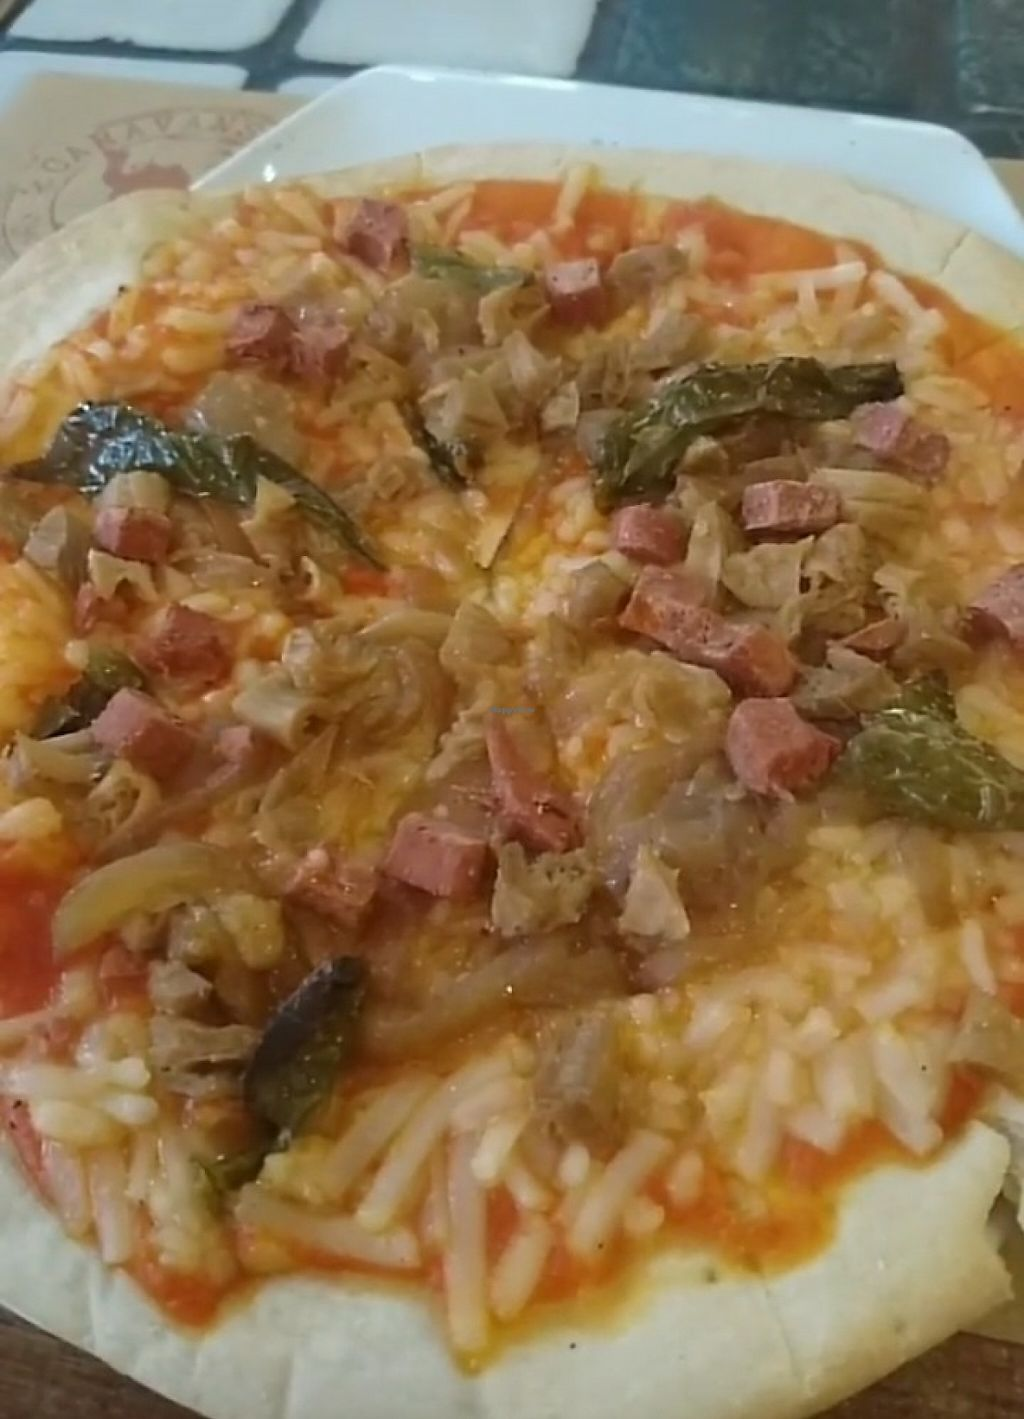 "Photo of Caravanserai  by <a href=""/members/profile/RenataScotti"">RenataScotti</a> <br/>Vegan chicken pizza <br/> May 30, 2017  - <a href='/contact/abuse/image/30196/264145'>Report</a>"